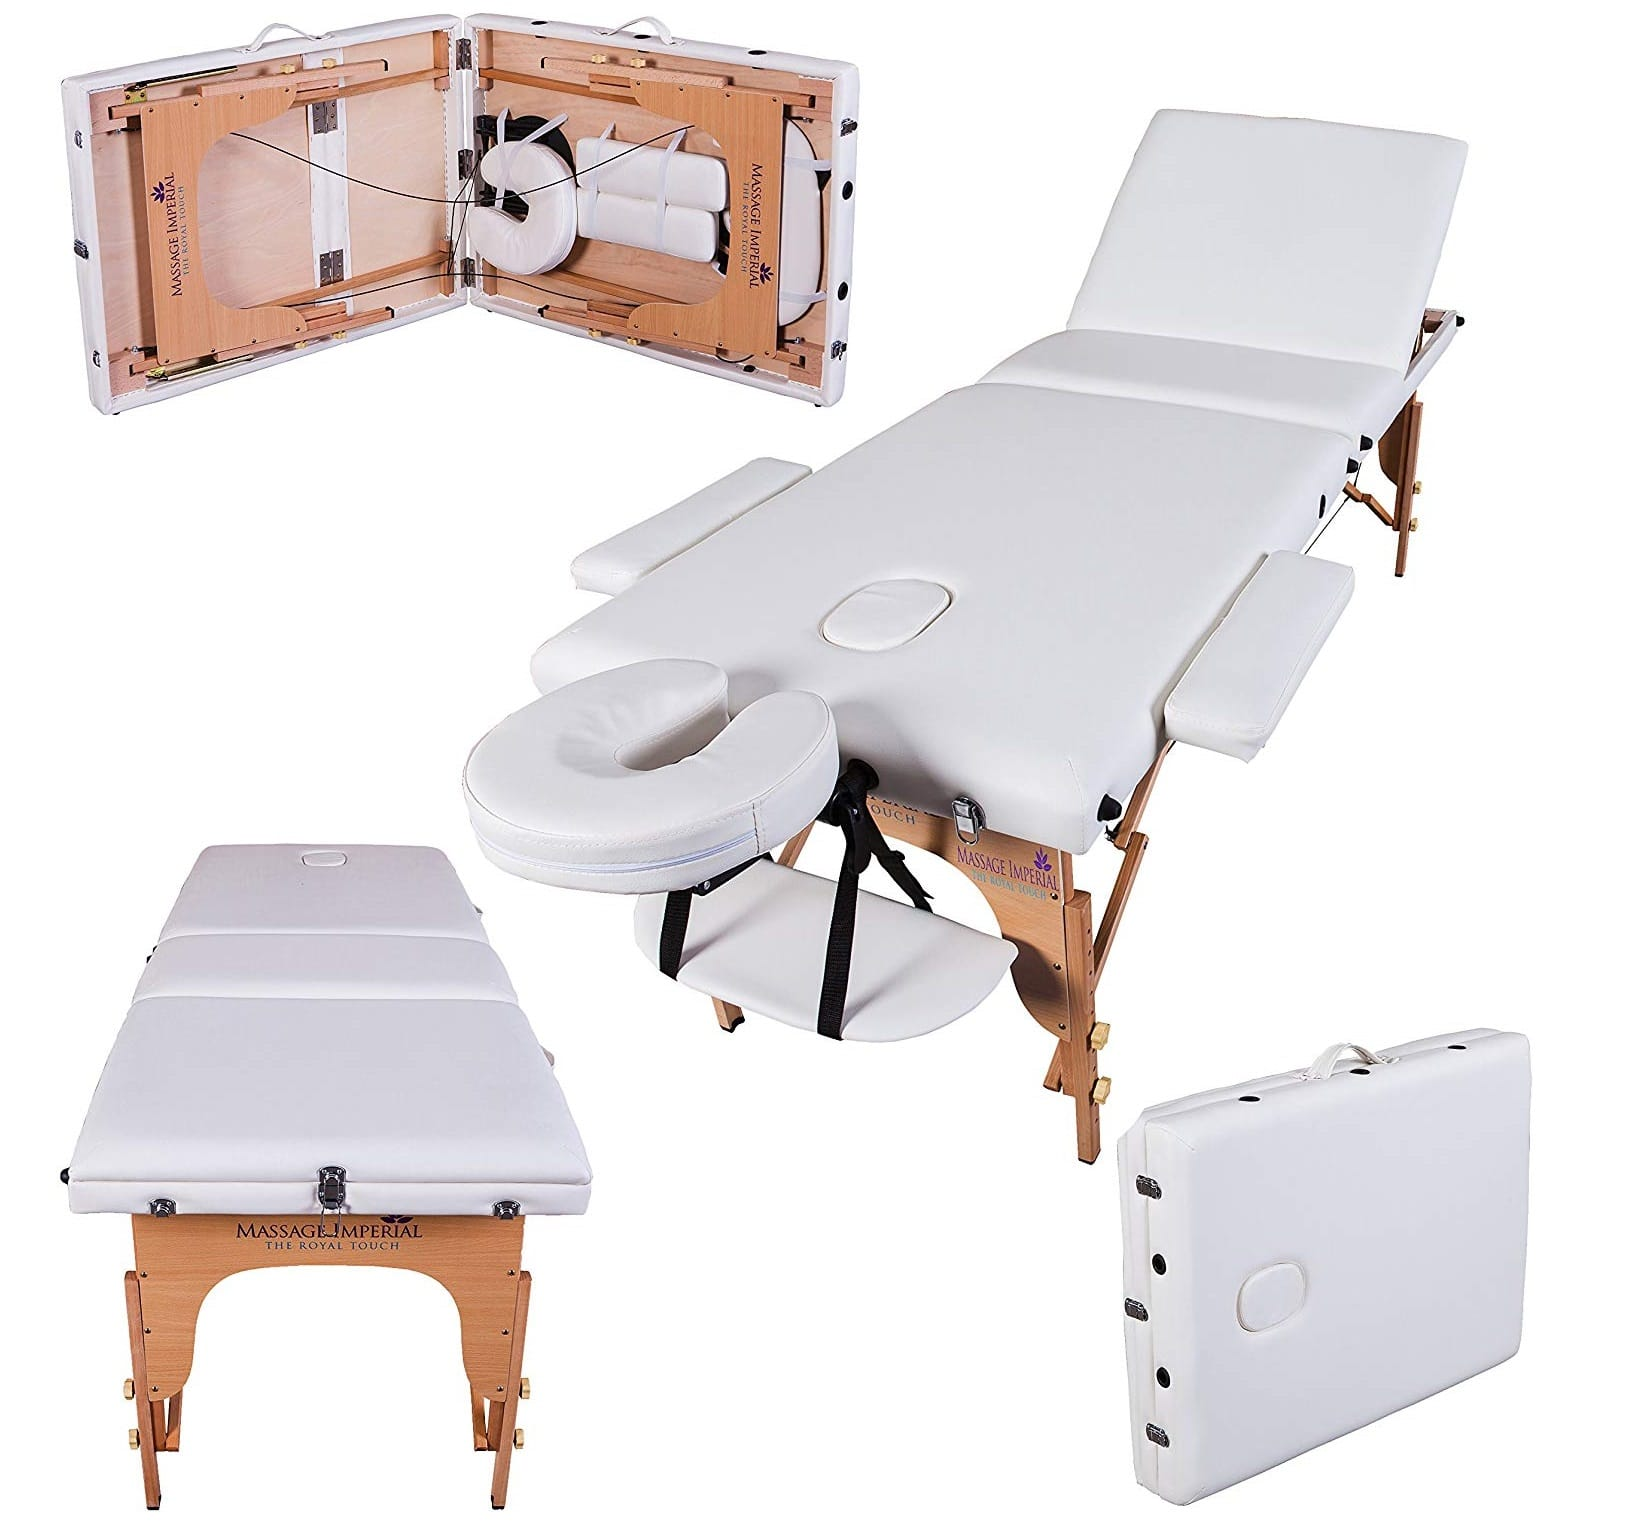 12.Massage Imperial® Deluxe Lightweight Ivory White 3-Section Portable Massage Table Couch Bed Reiki